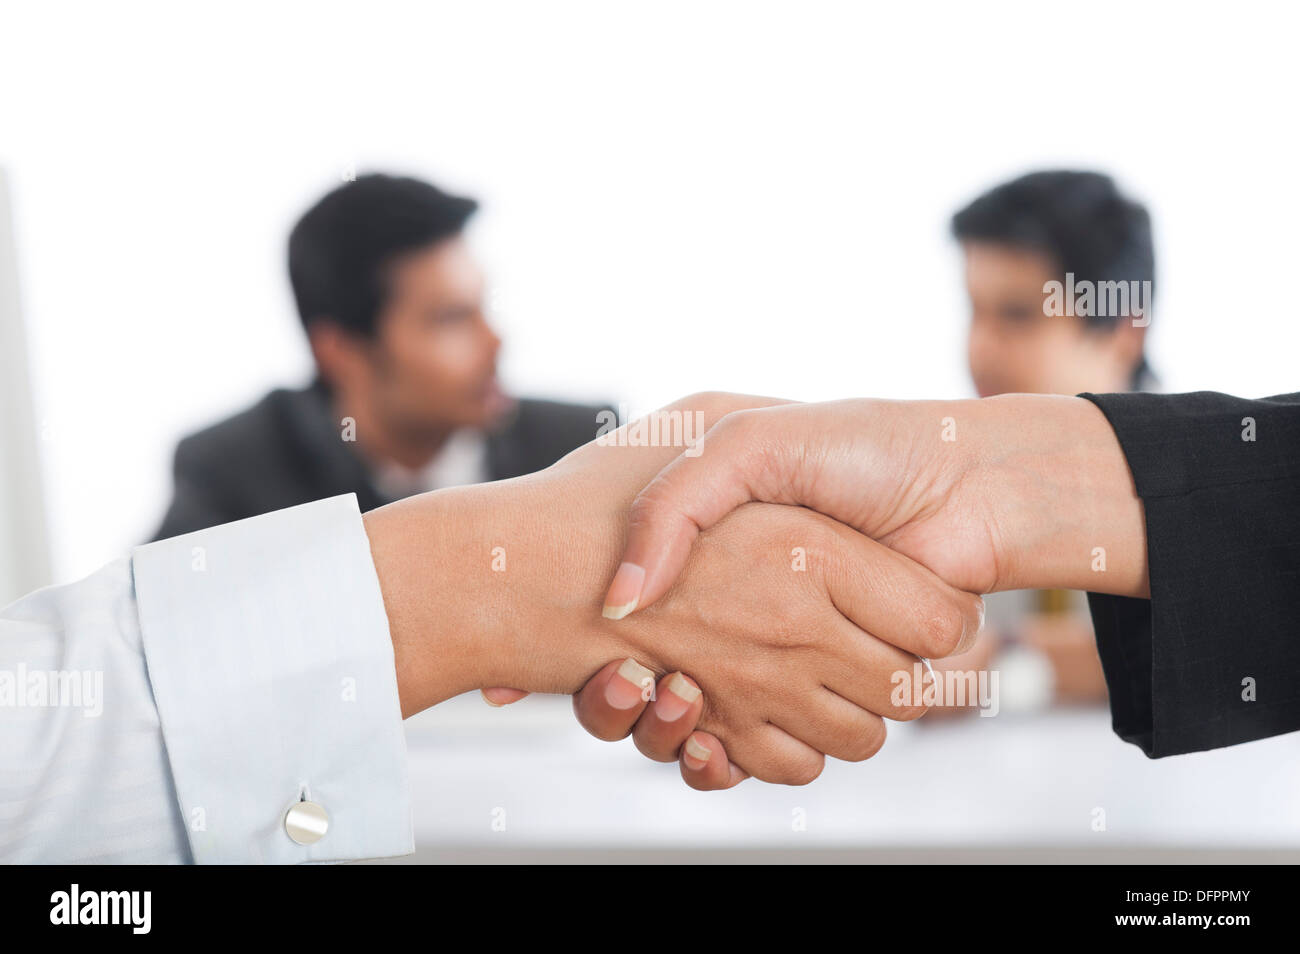 Indian White Hands Shaking Stock Photos & Indian White Hands